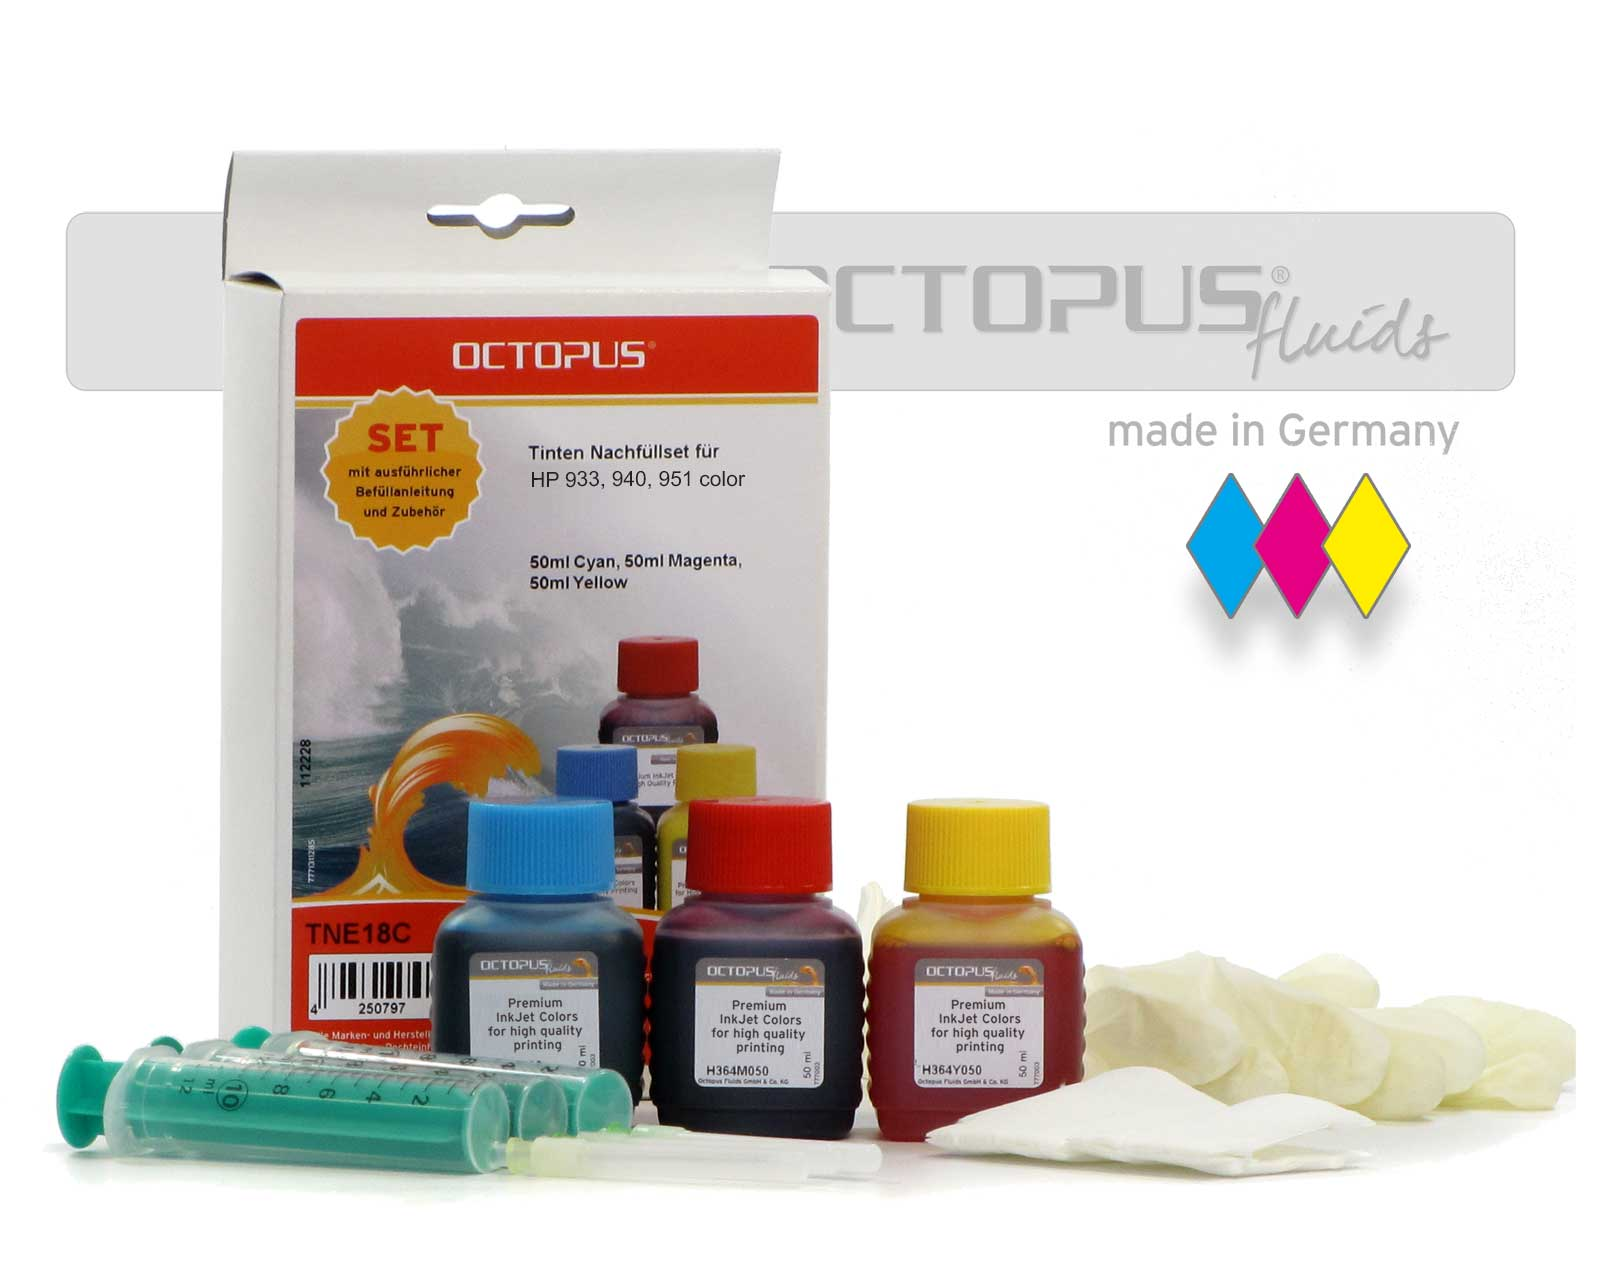 Ink Refill Kit for HP 933, 940, 951 color